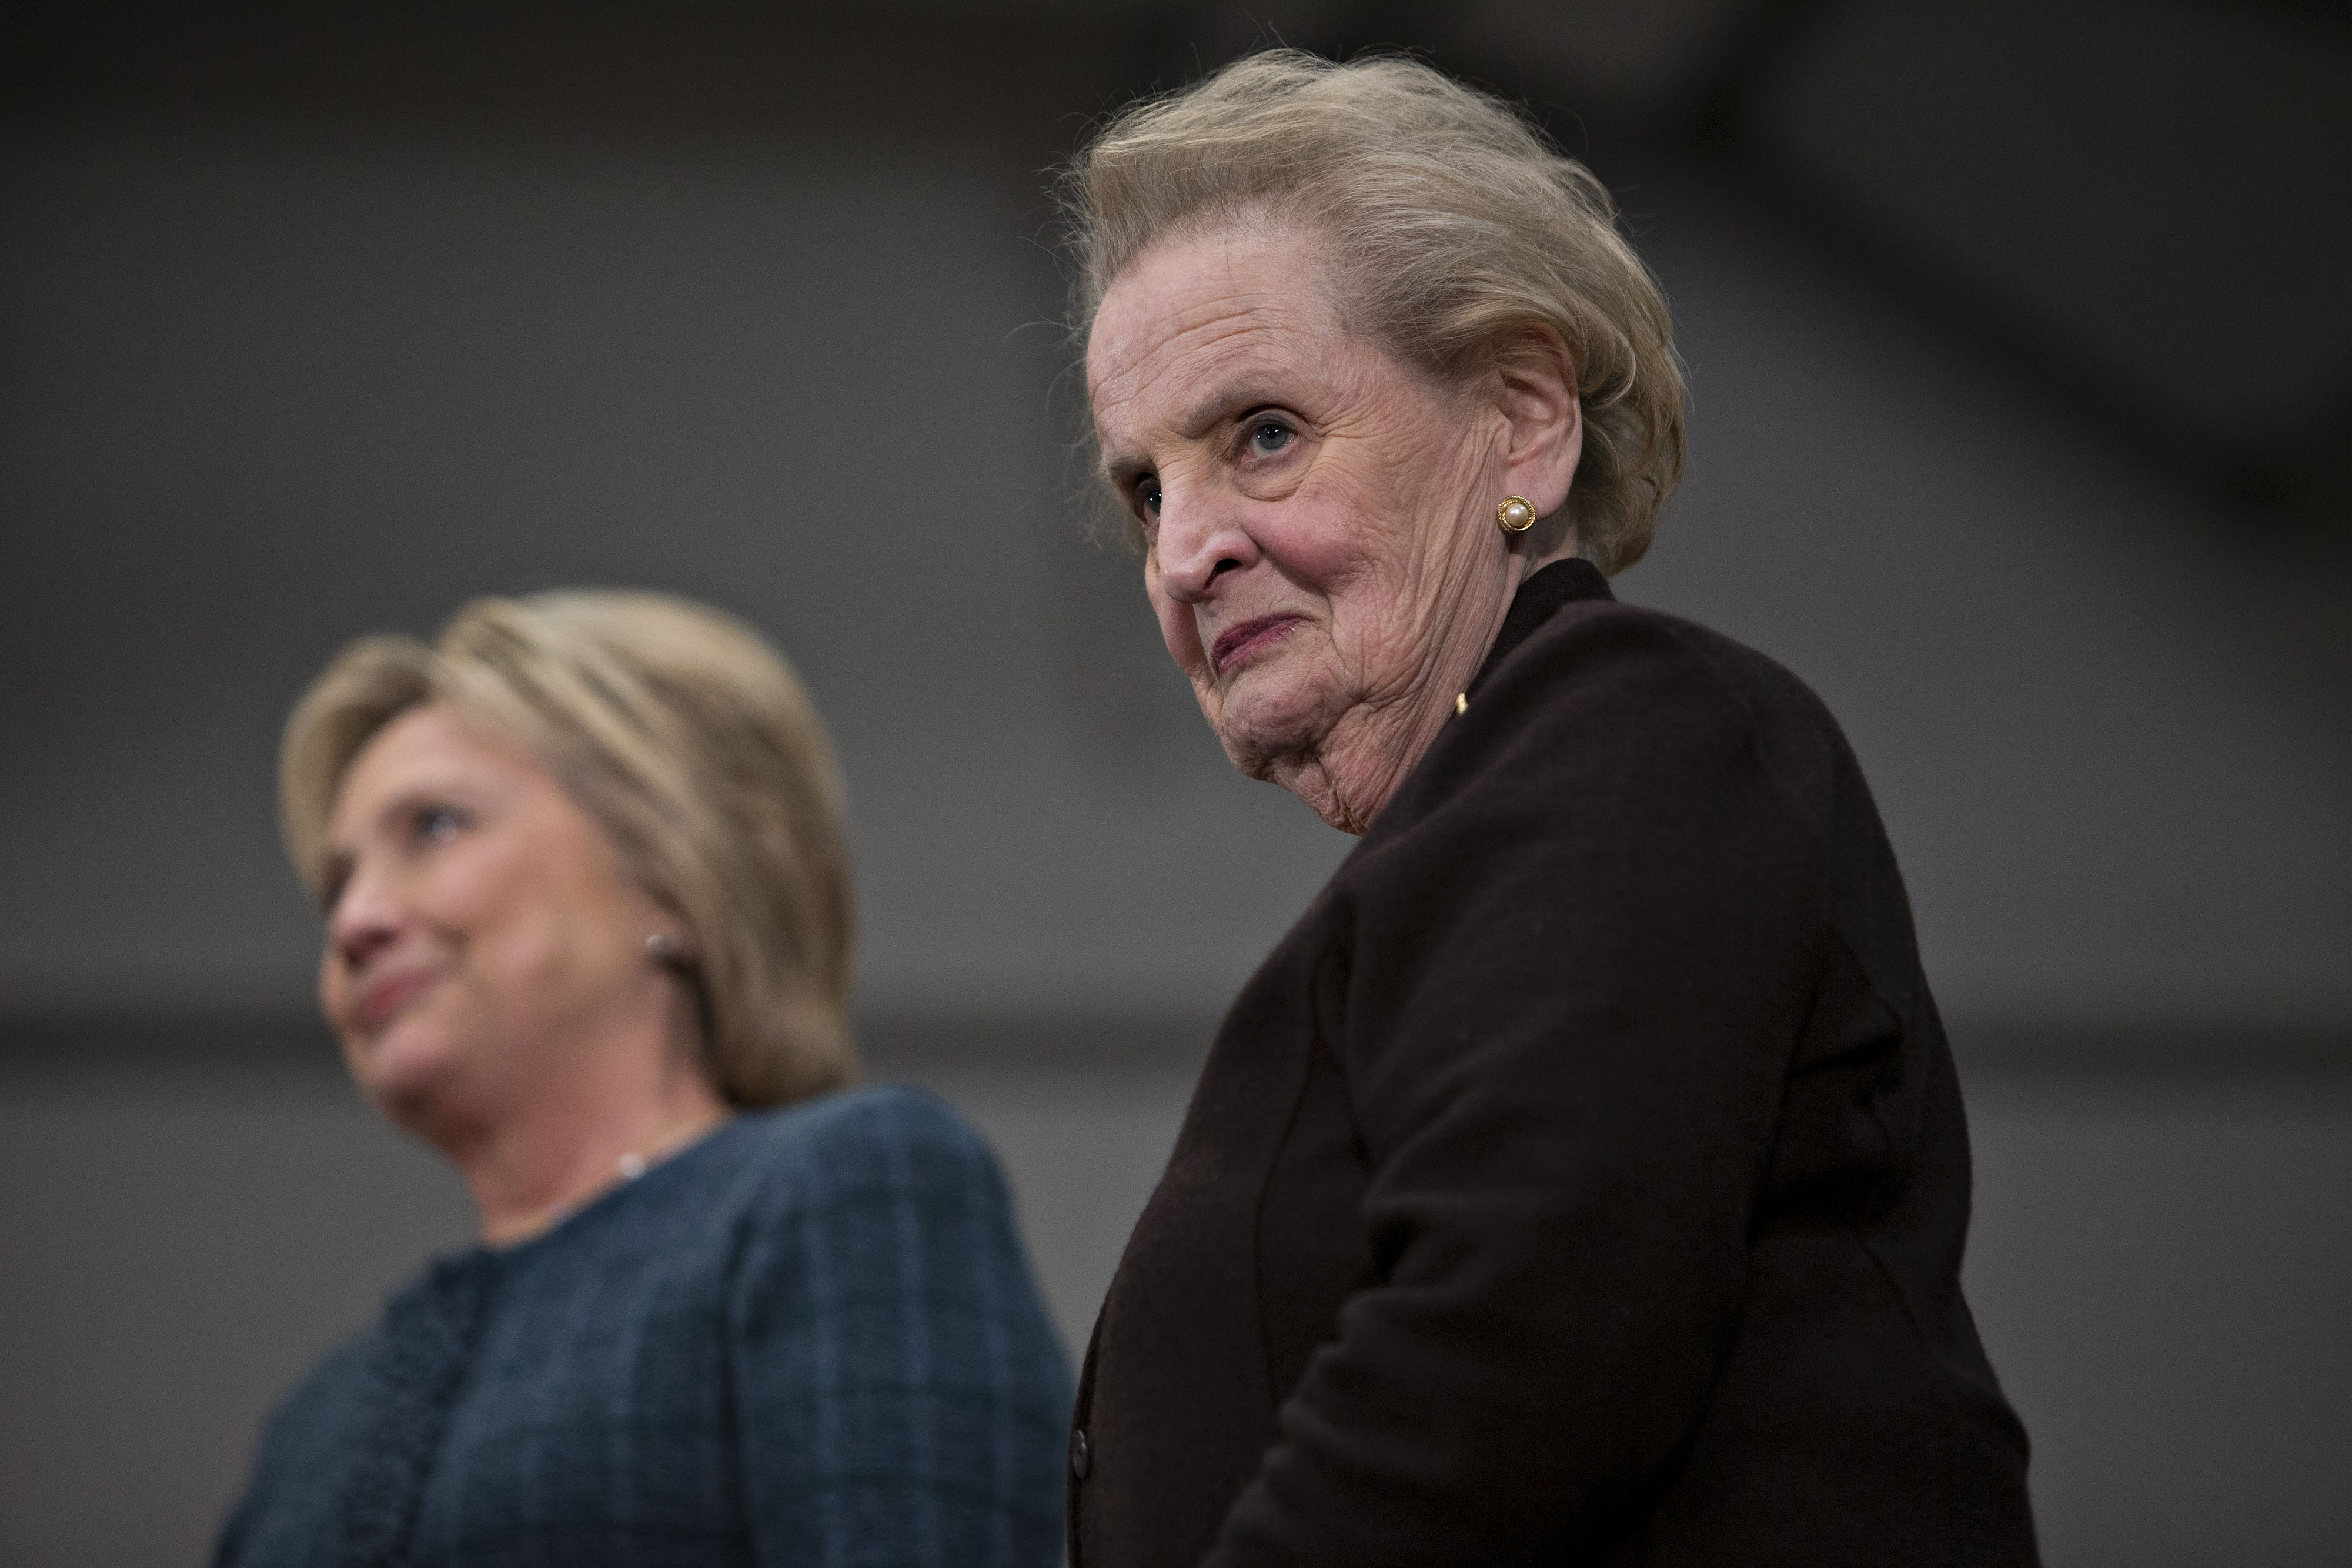 Madeleine Albright, right, joins Hilary Clinton, left, in Concord, N.H. on Feb. 6, 2016.